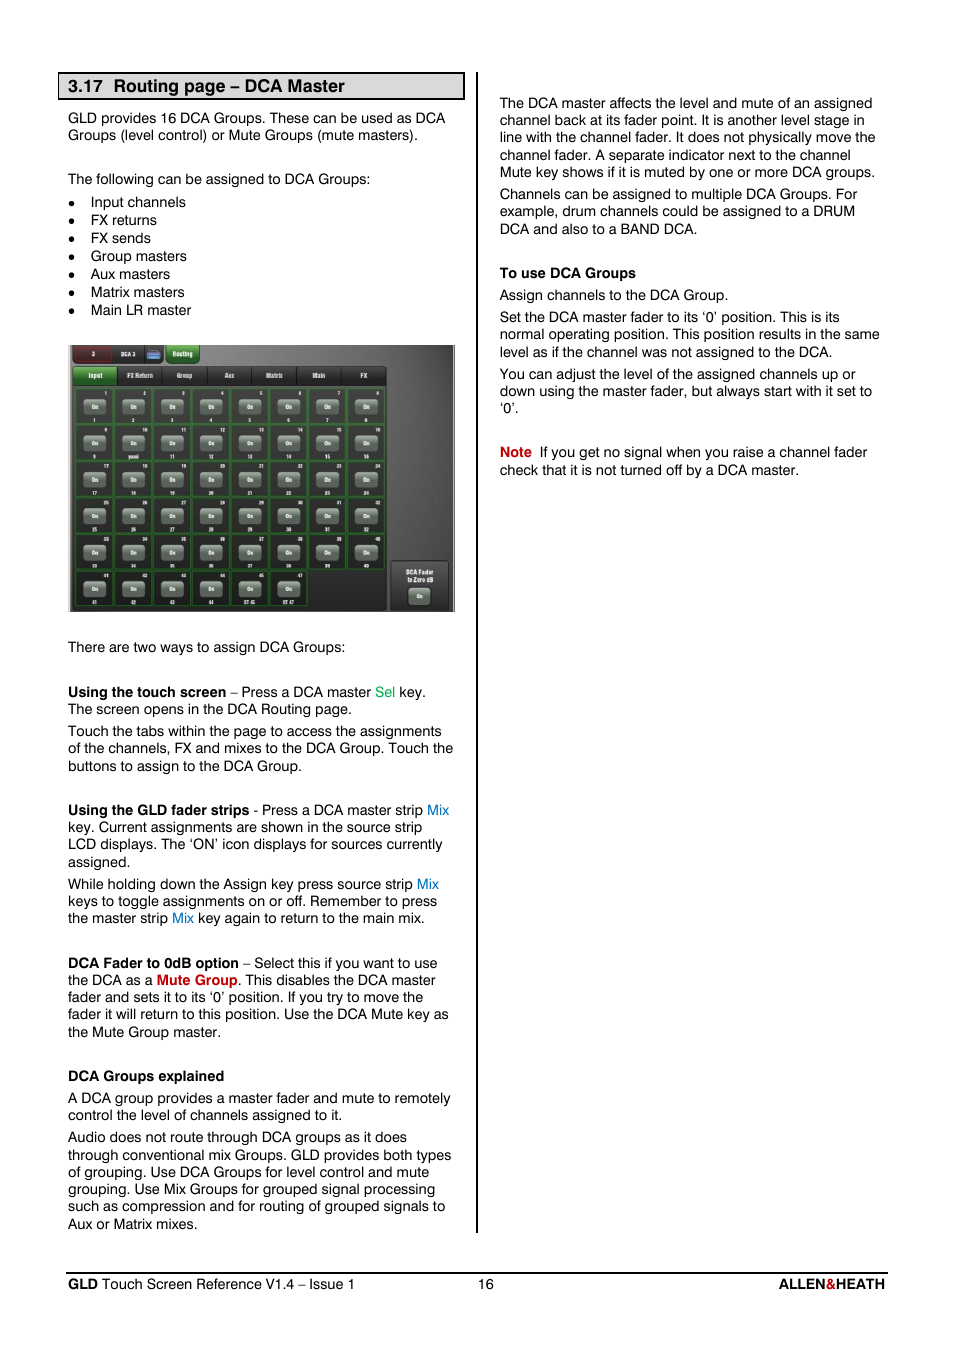 Allen&Heath GLD-112 Reference Guide User Manual | Page 16